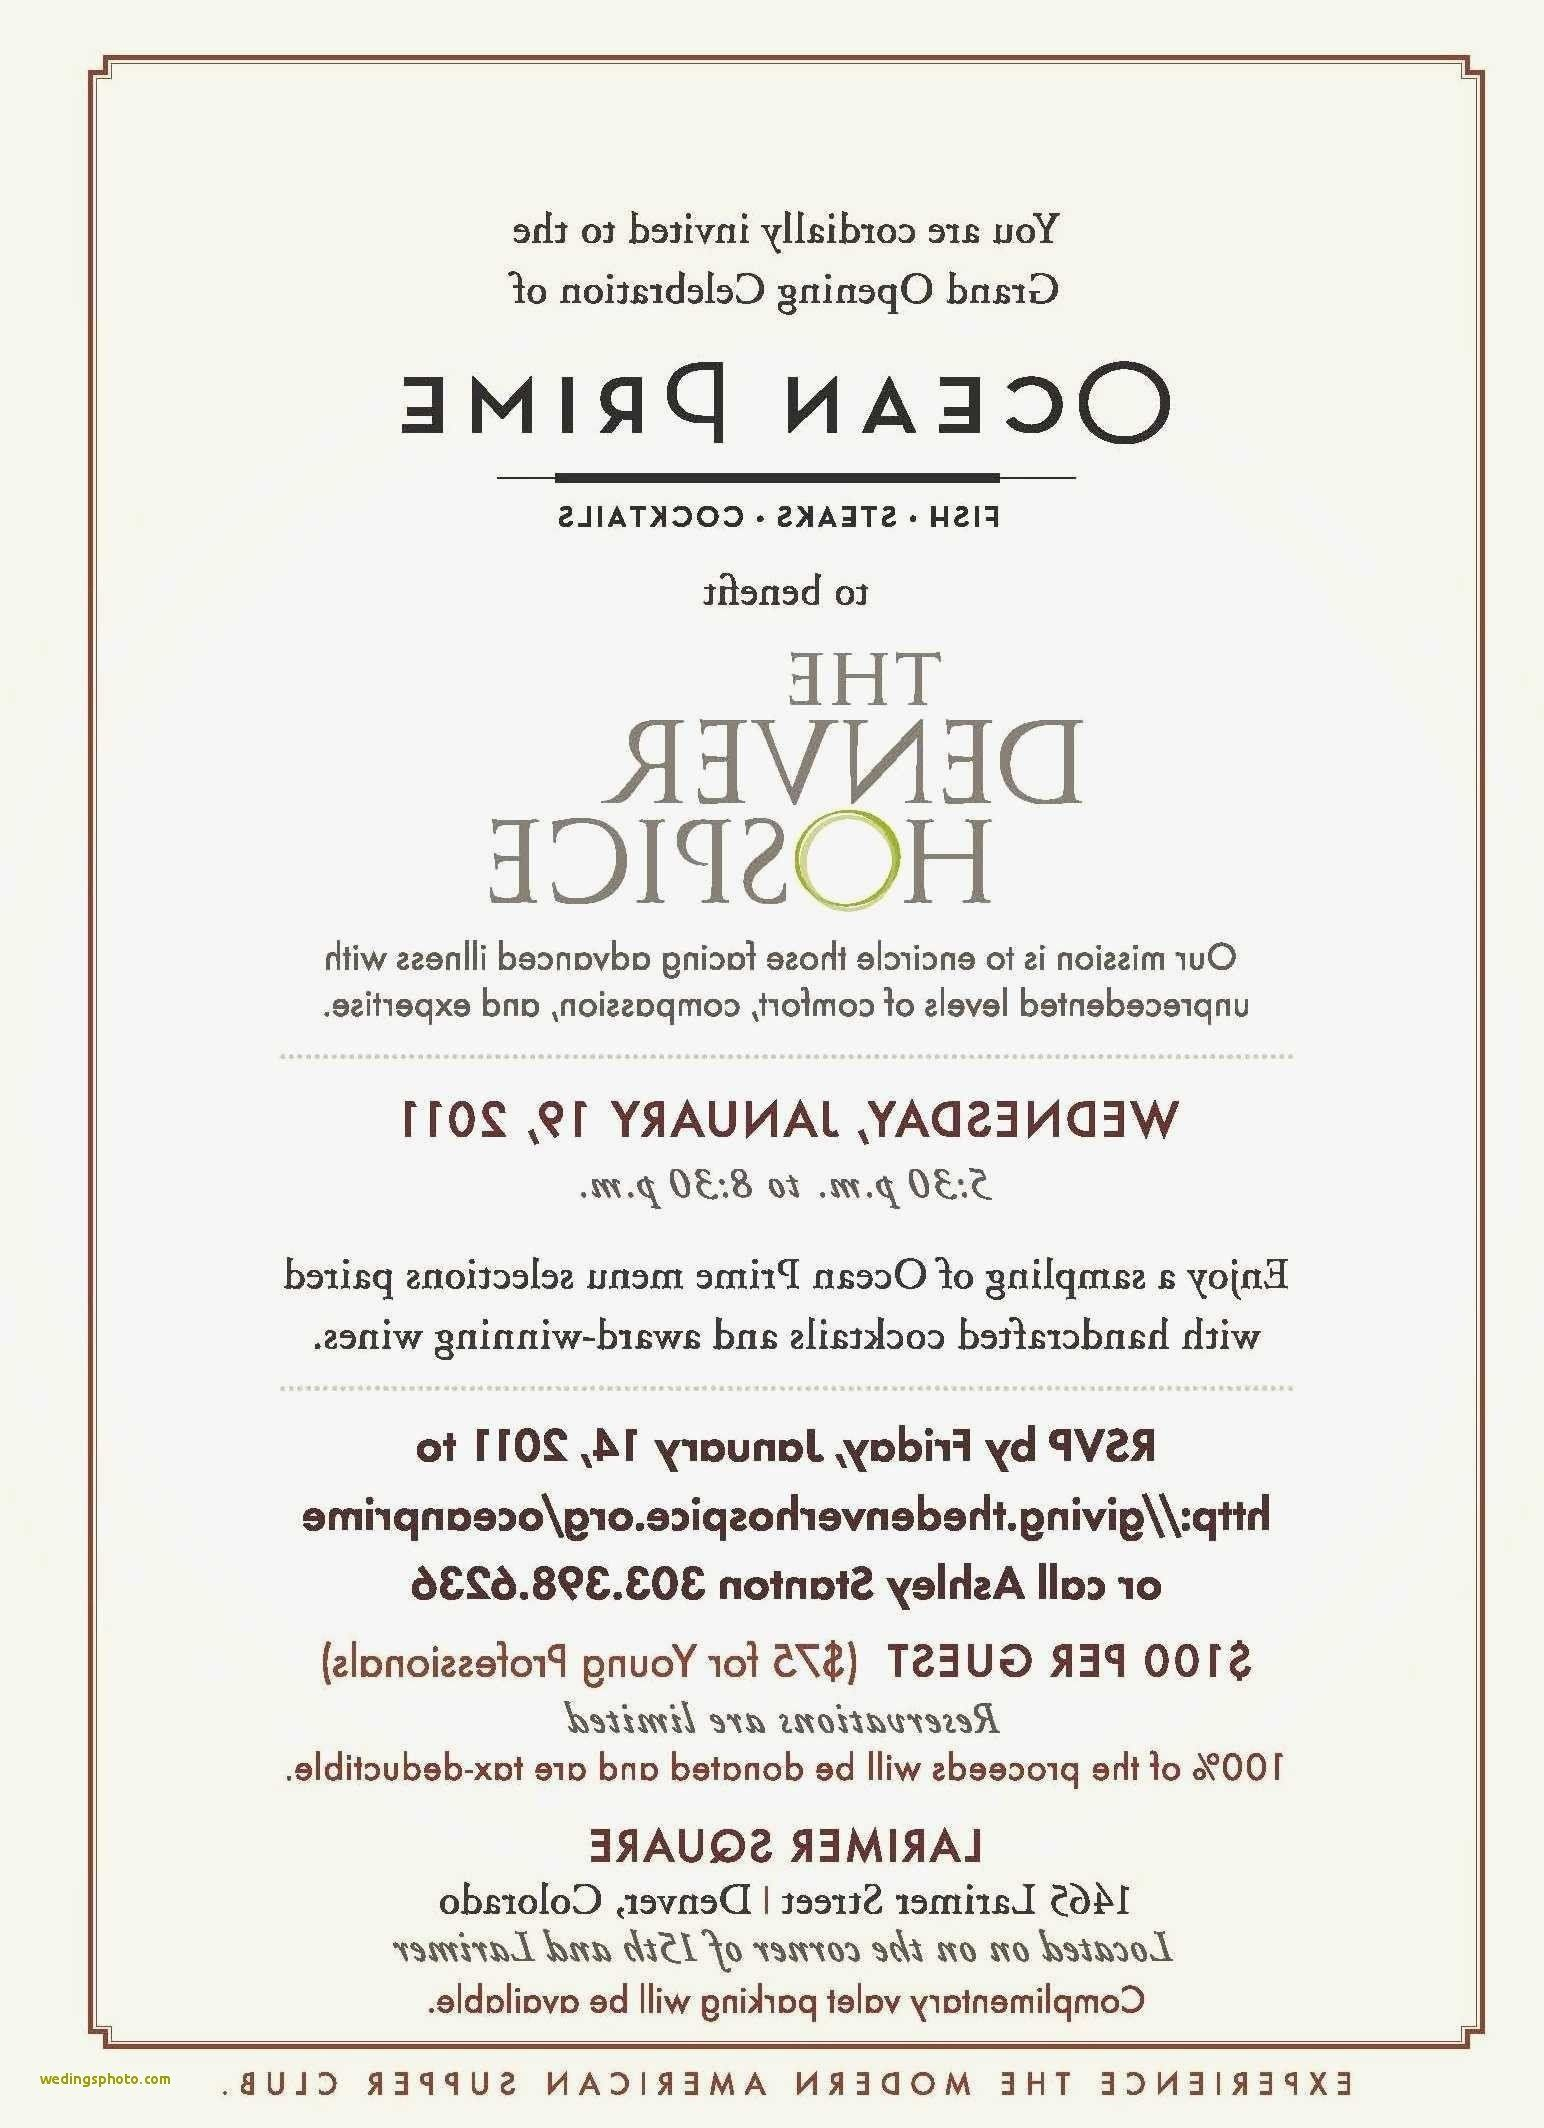 Wedding Invitation Wording For Friends Sample Wedding Invitation Wording For Friends From Bride And